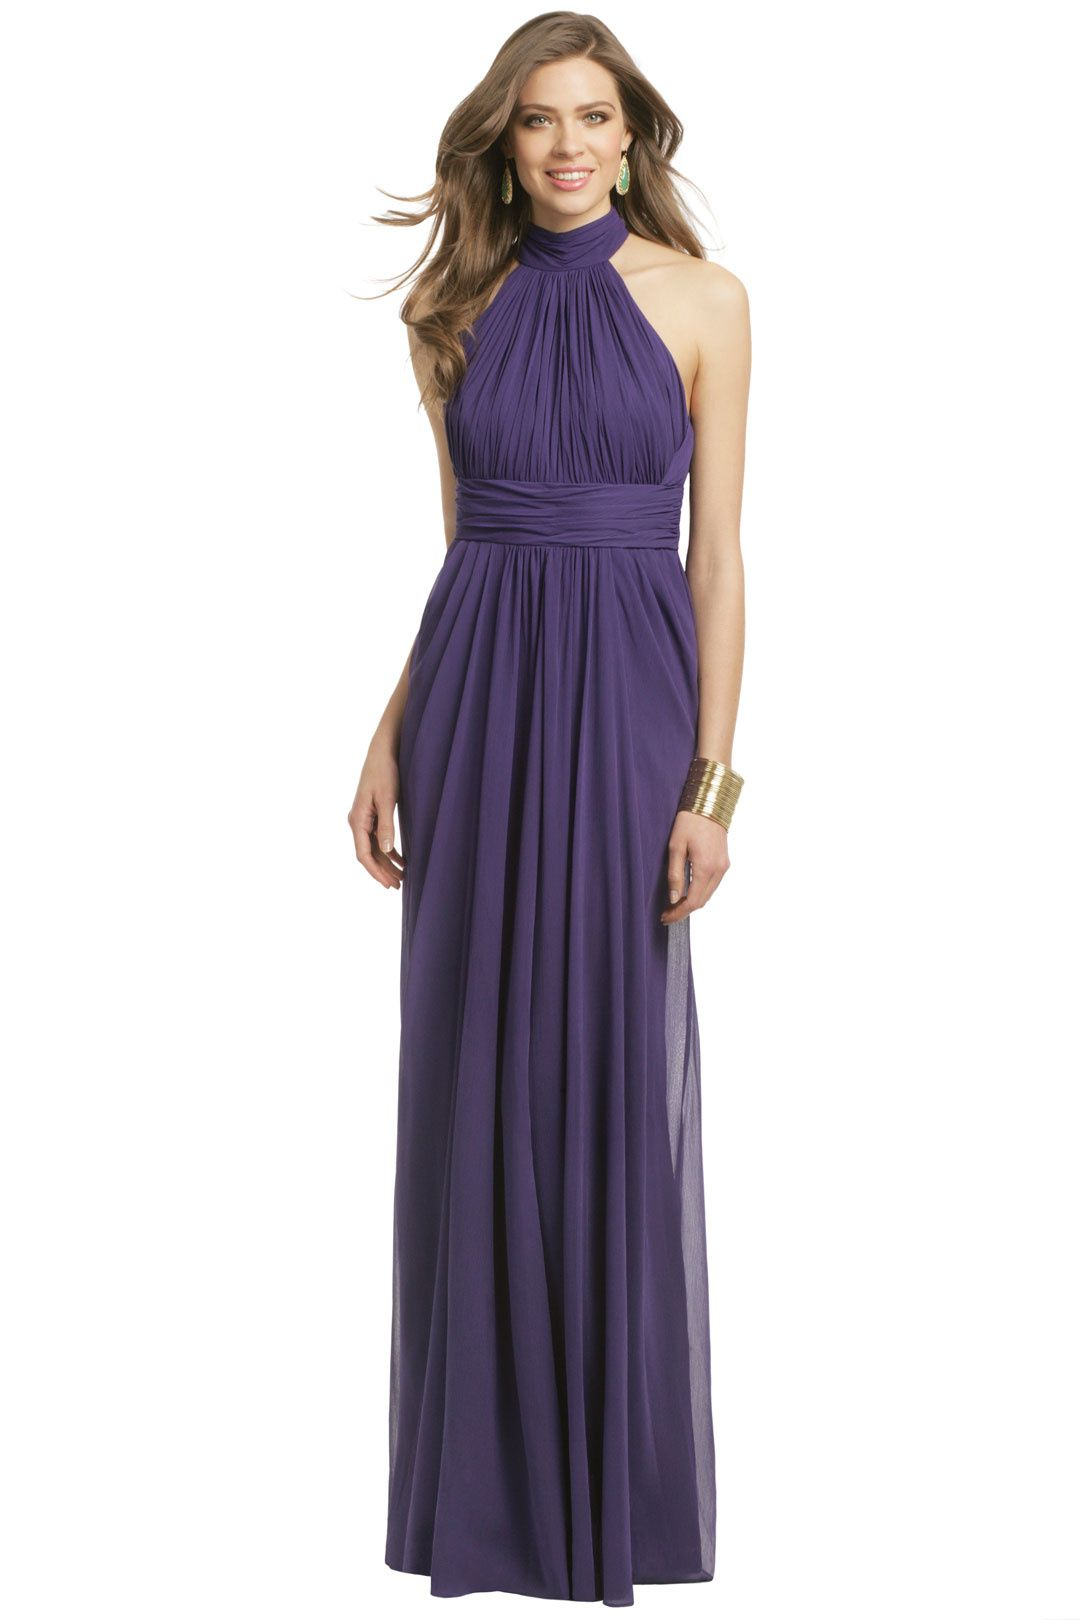 Dress to wear to a wedding as a guest in june  Make Love Not War Gown  Black tie wedding guests Badgley mischka